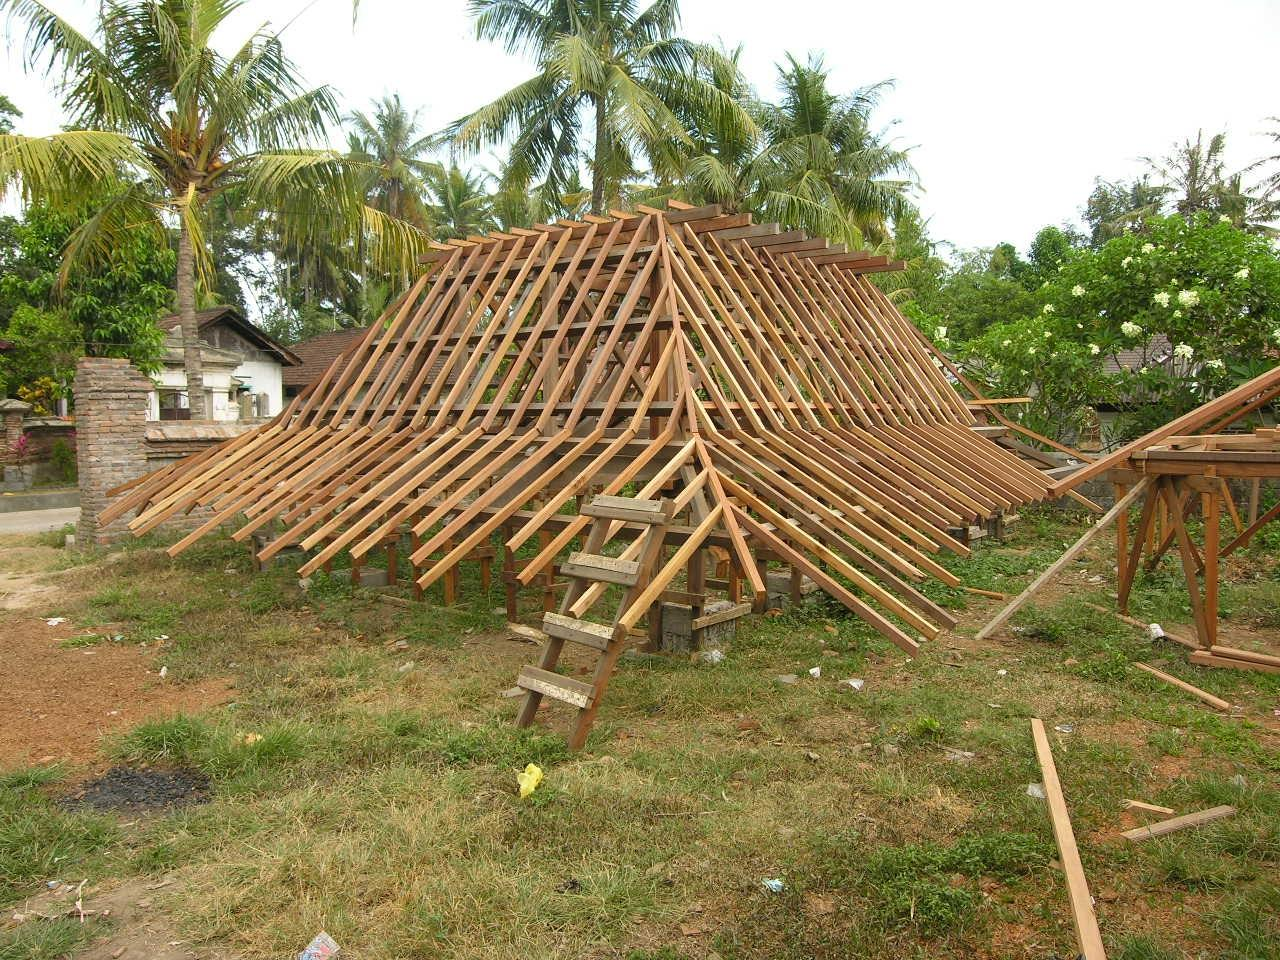 Bali prefab world prefab houses bali roof structures for Prefabricated roof